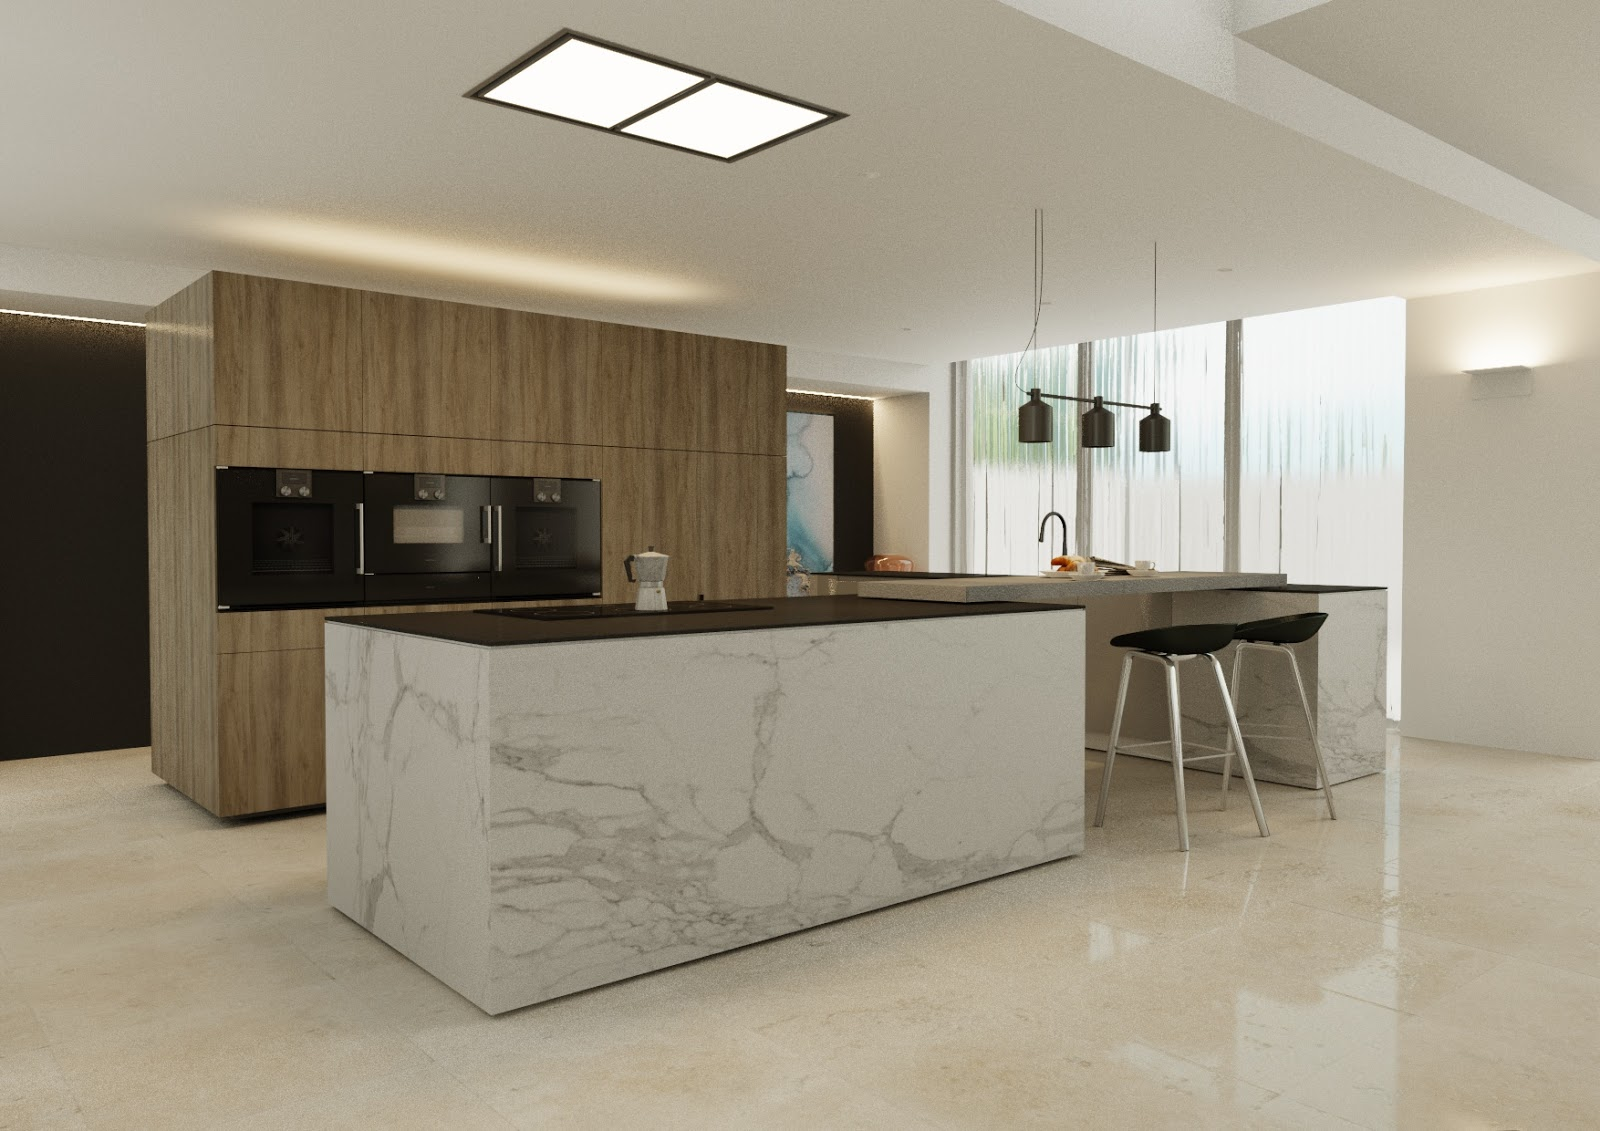 Kitchen Cabinet Modern Home Design Style Shaped Laminate Photo Modern Kitchens Designs